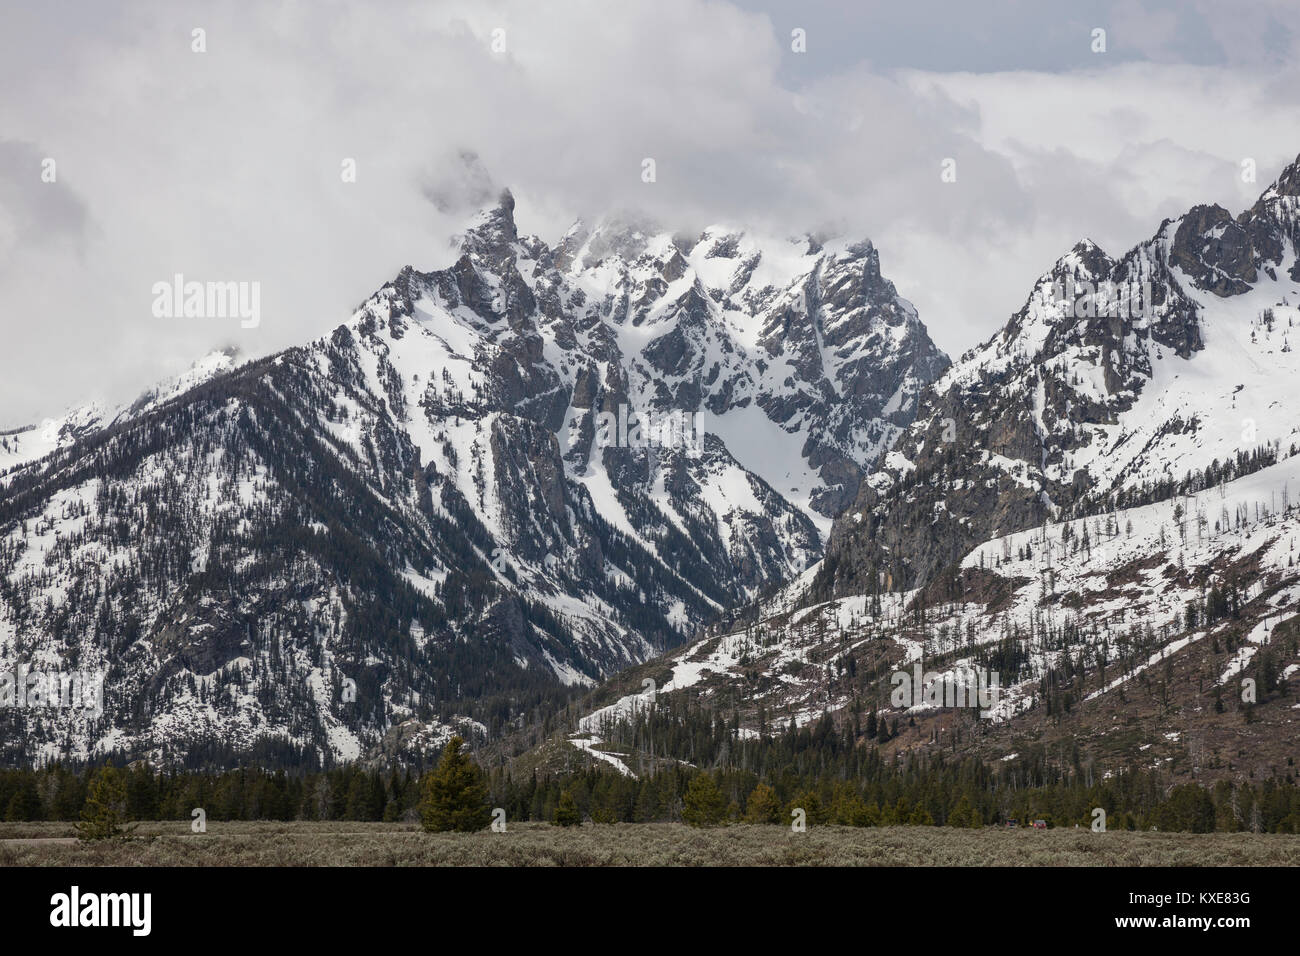 The Cathedral Group, Mountain View Turnout, Grand Teton National Park, Wyoming - Stock Image